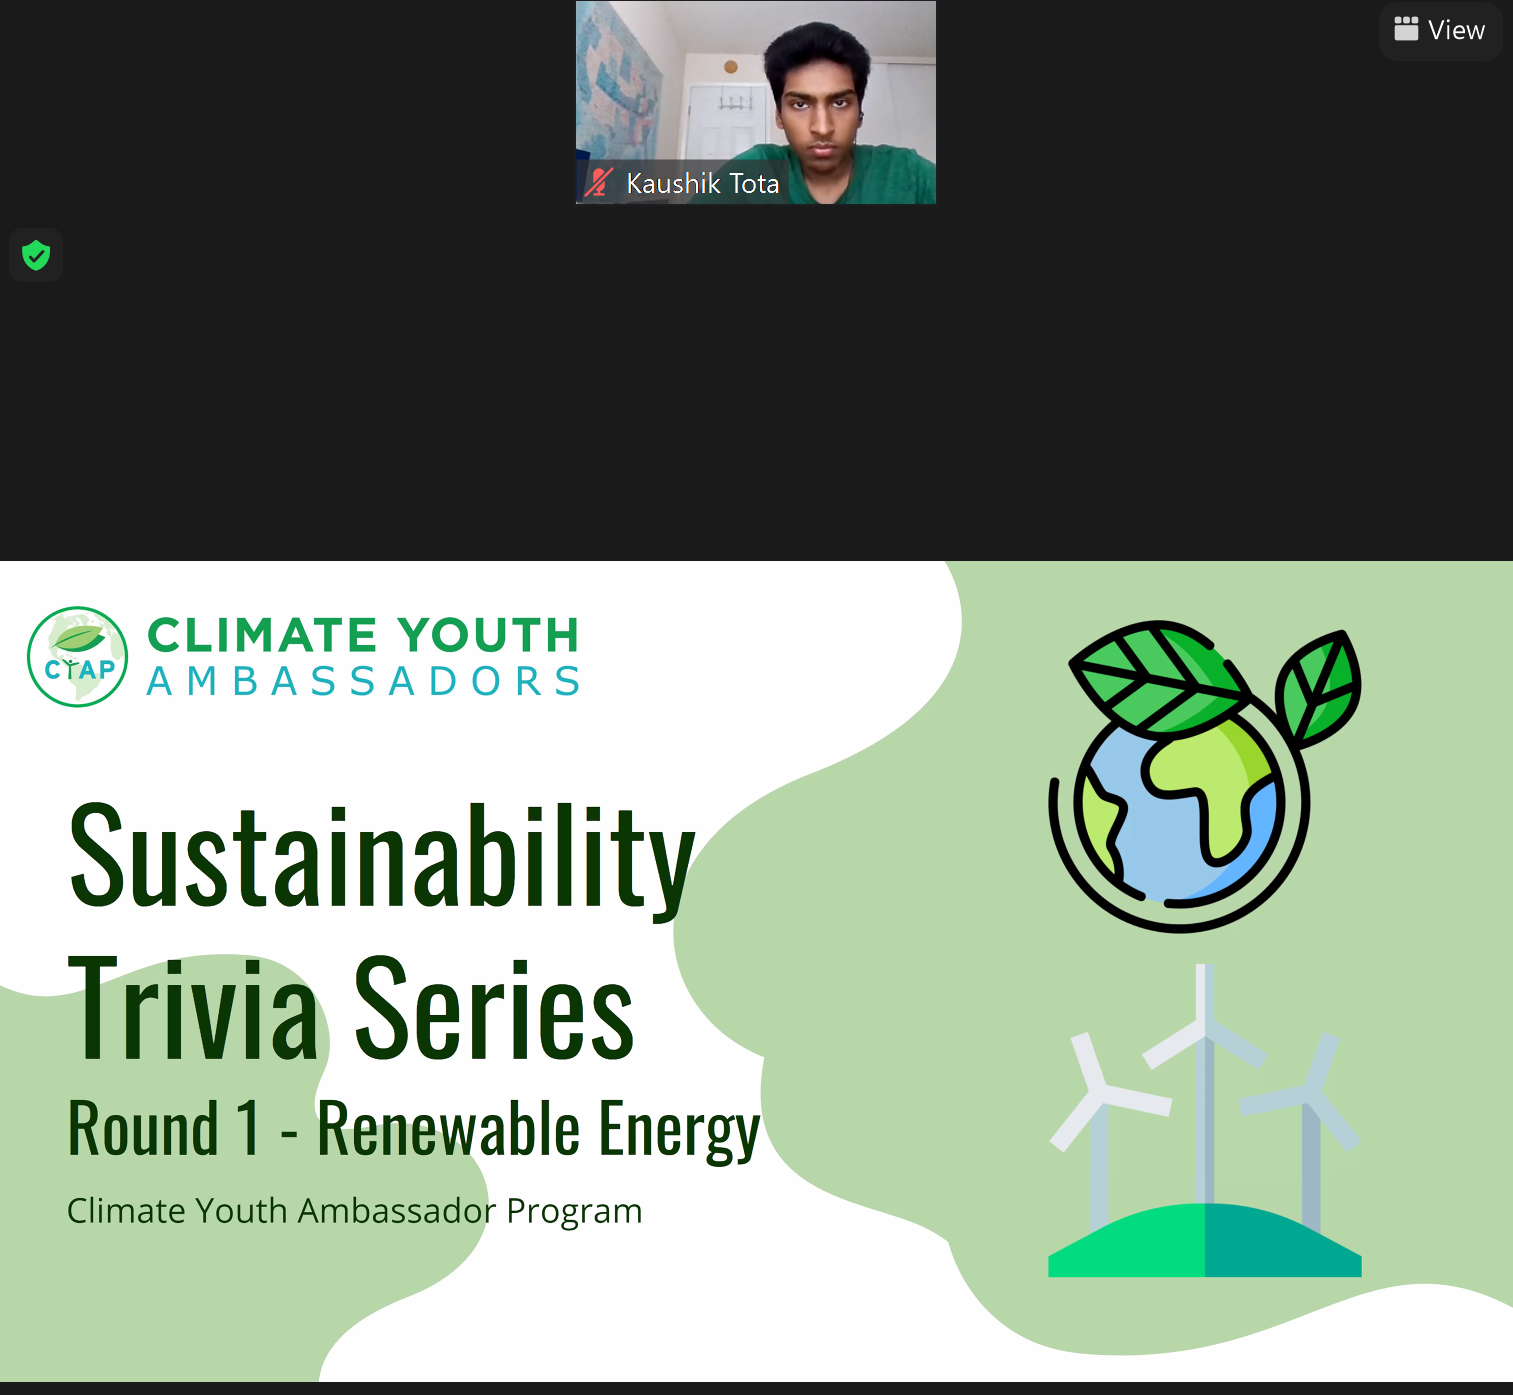 Sustainability Trivia Series Round 1